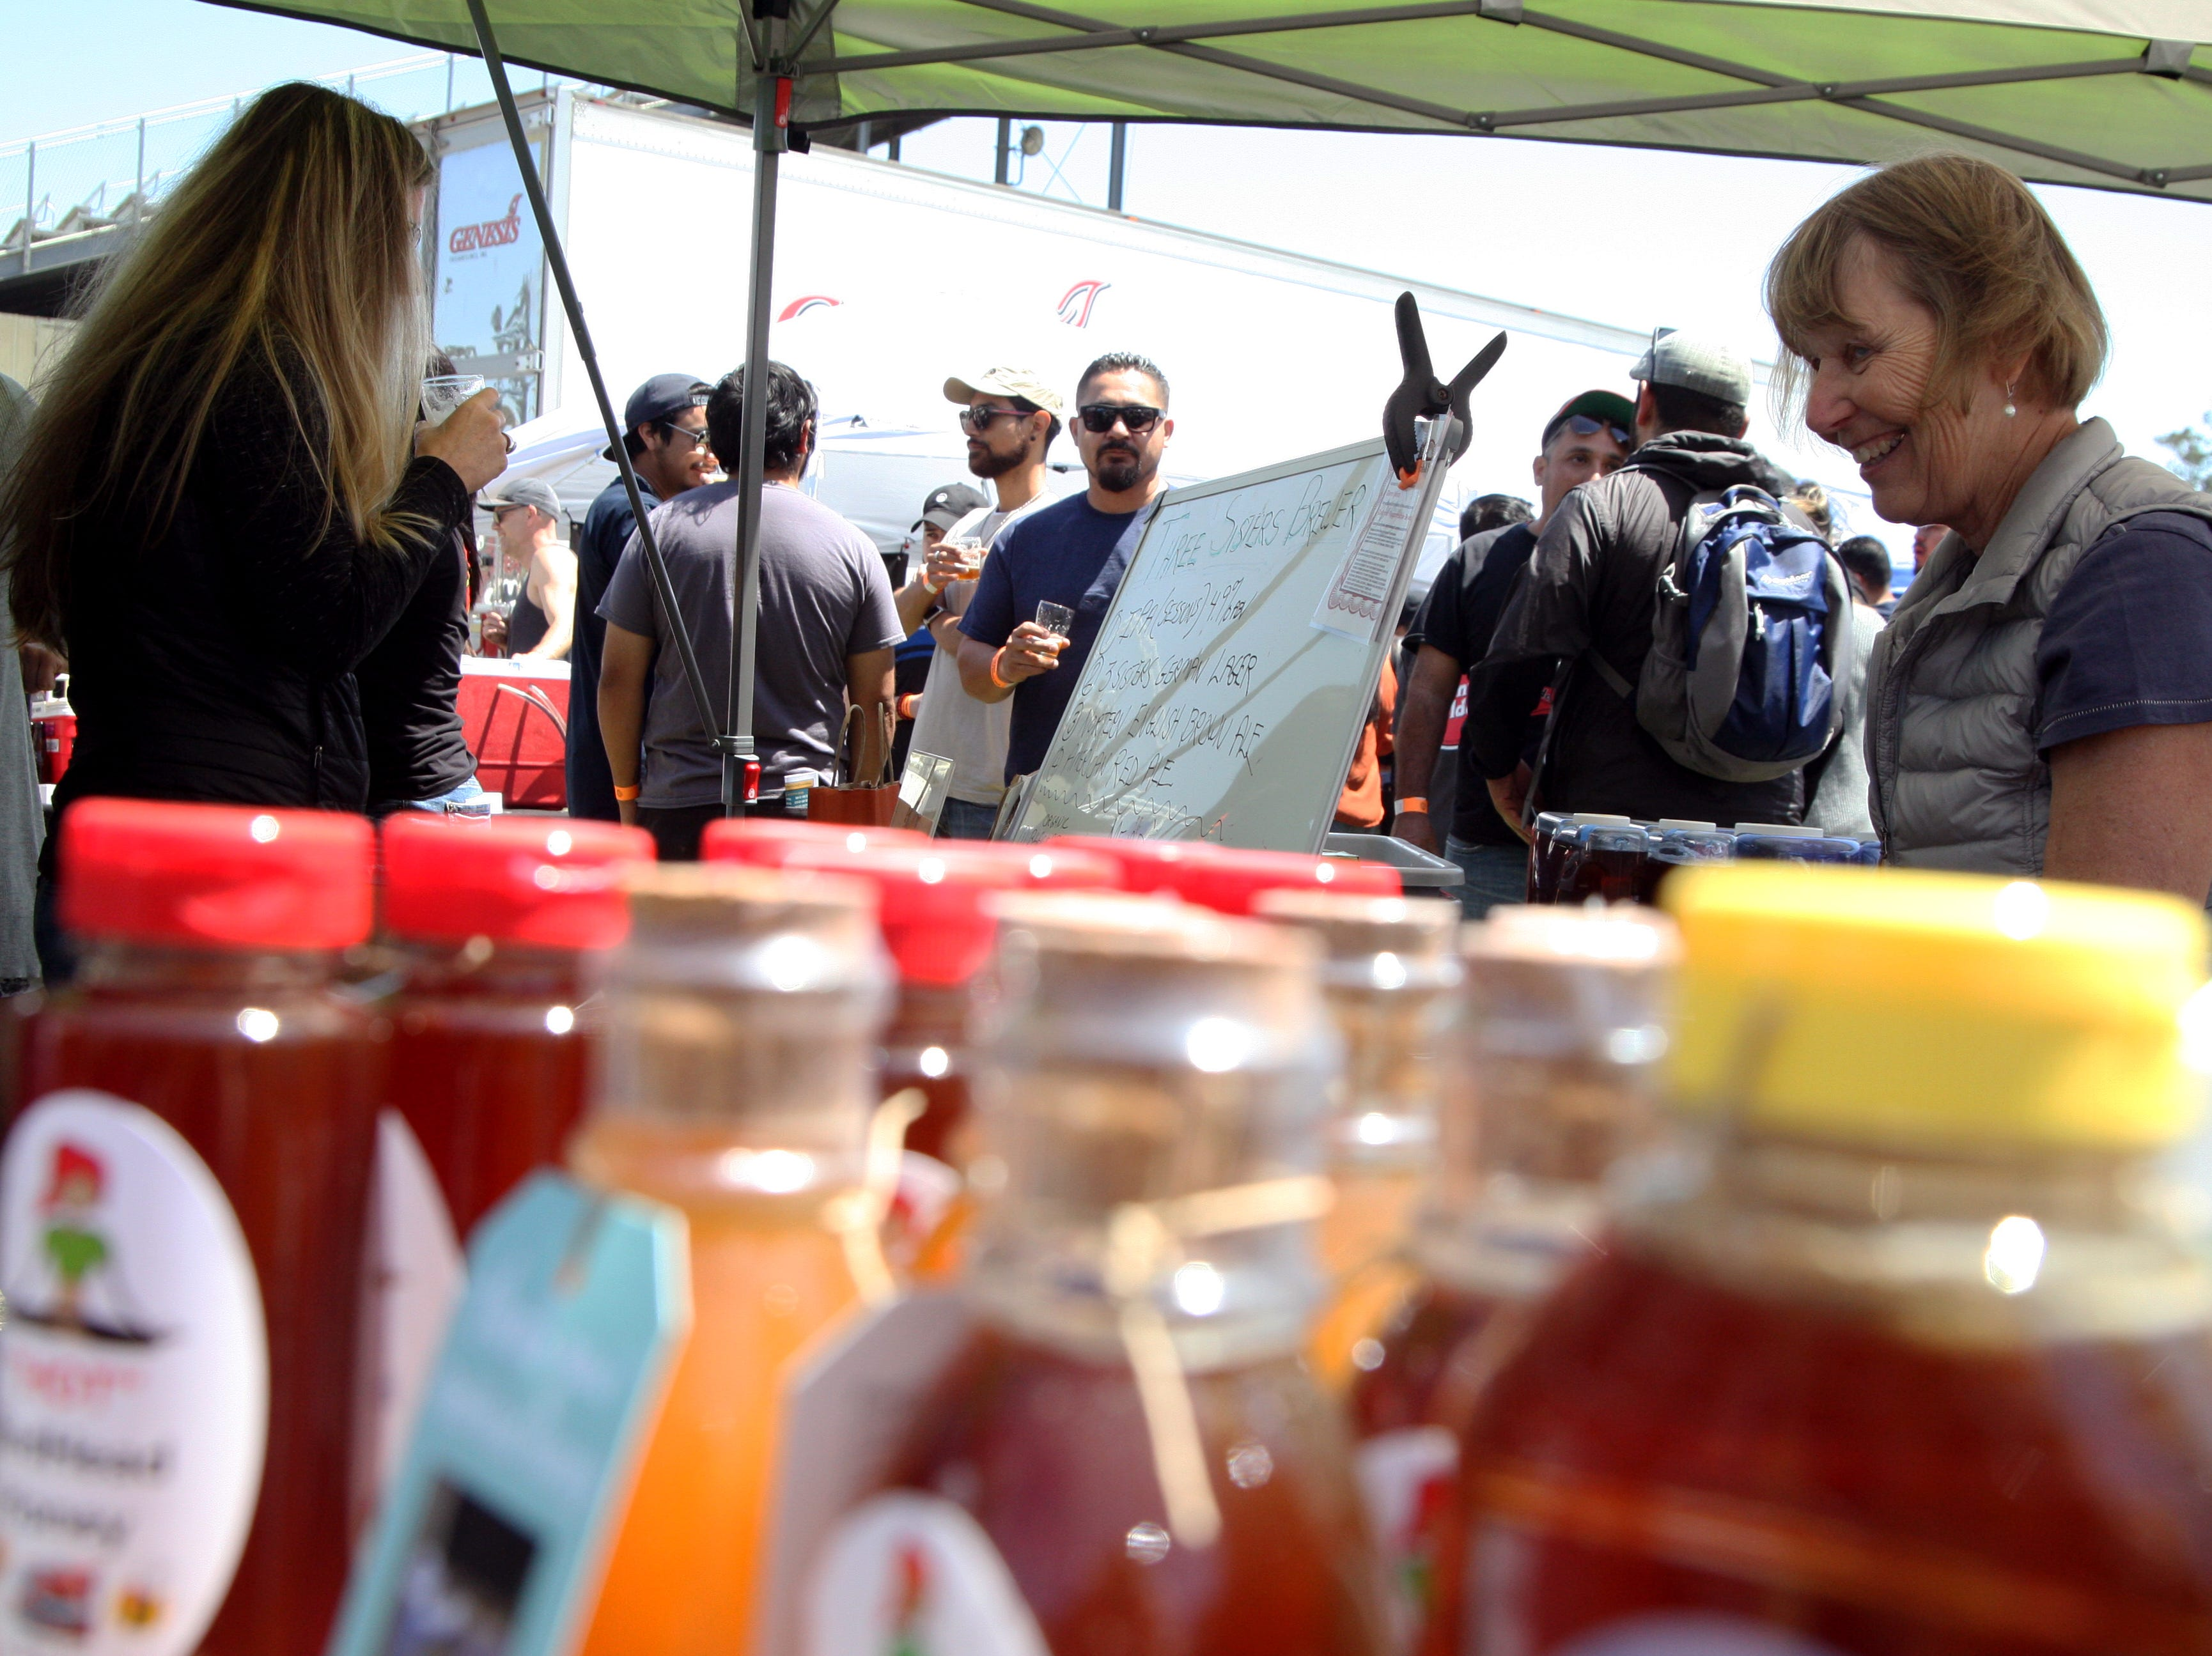 More than just beer was on sale at the Brew Fest; some sold honey, t-shirts, and more. May 4, 2019.